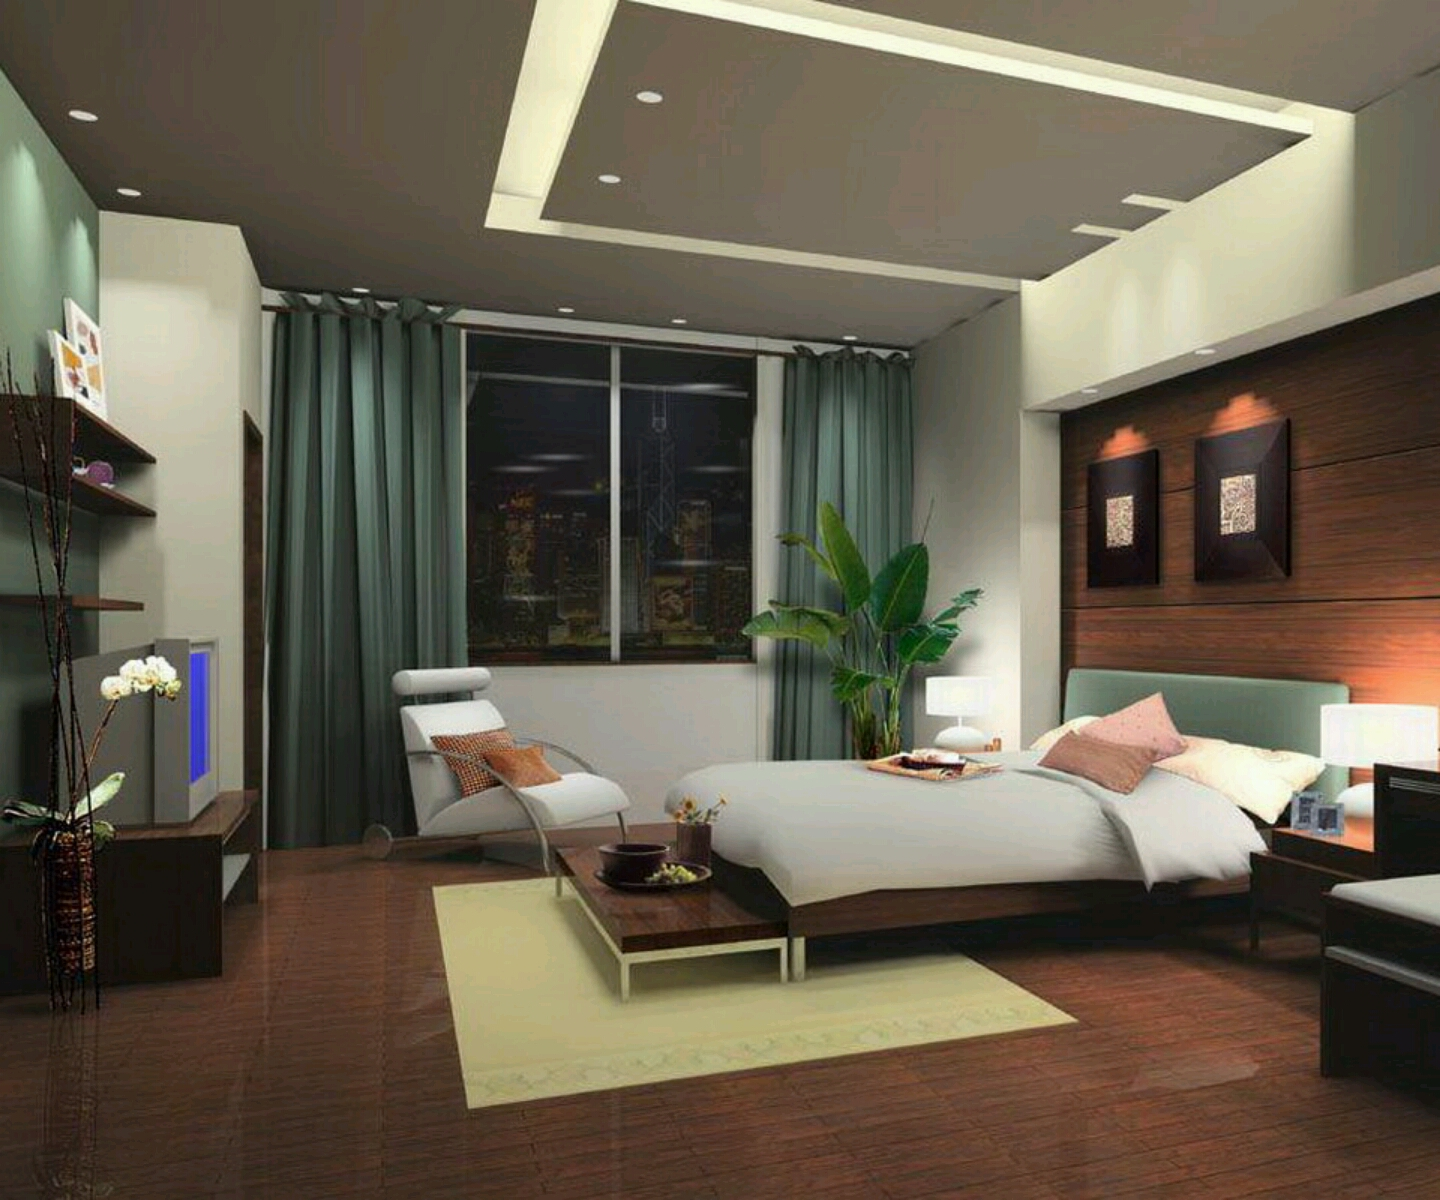 New home designs latest modern bedrooms designs best ideas for Best new home ideas